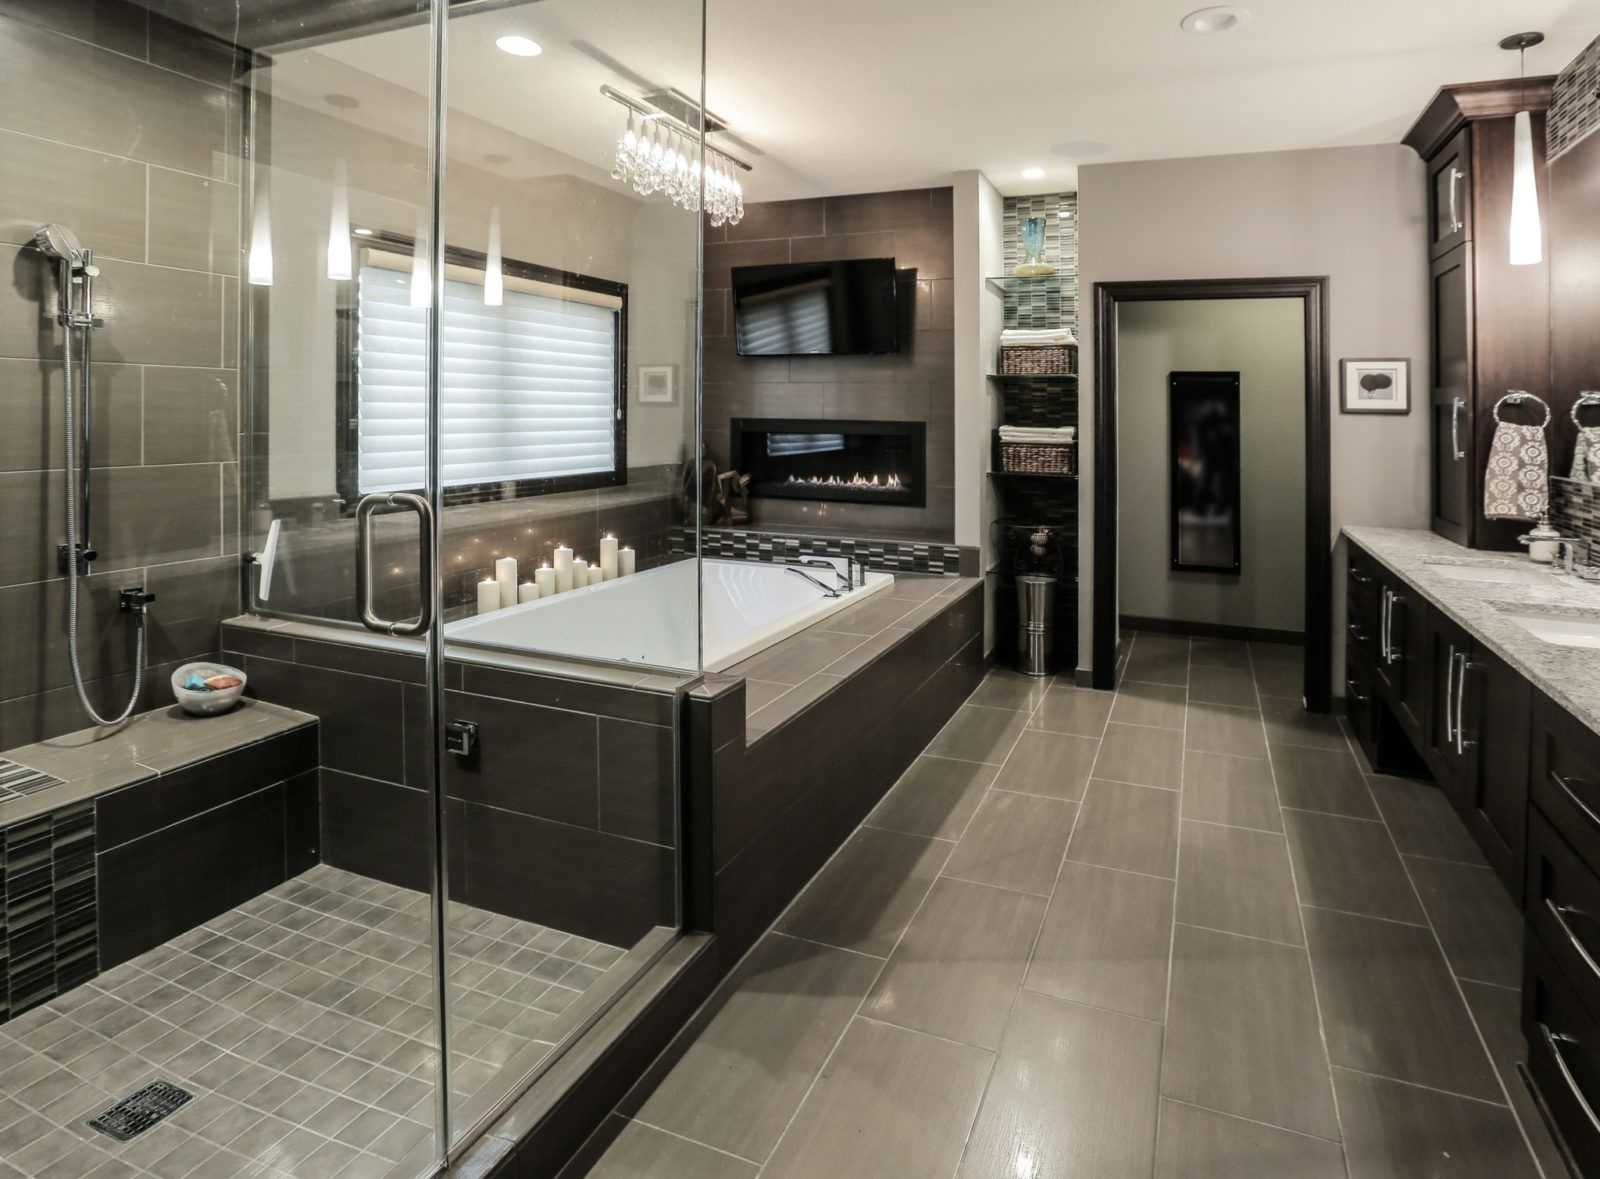 Photo of Grandview Ct, Franklin Master Bathroom Remodeling by AB&K